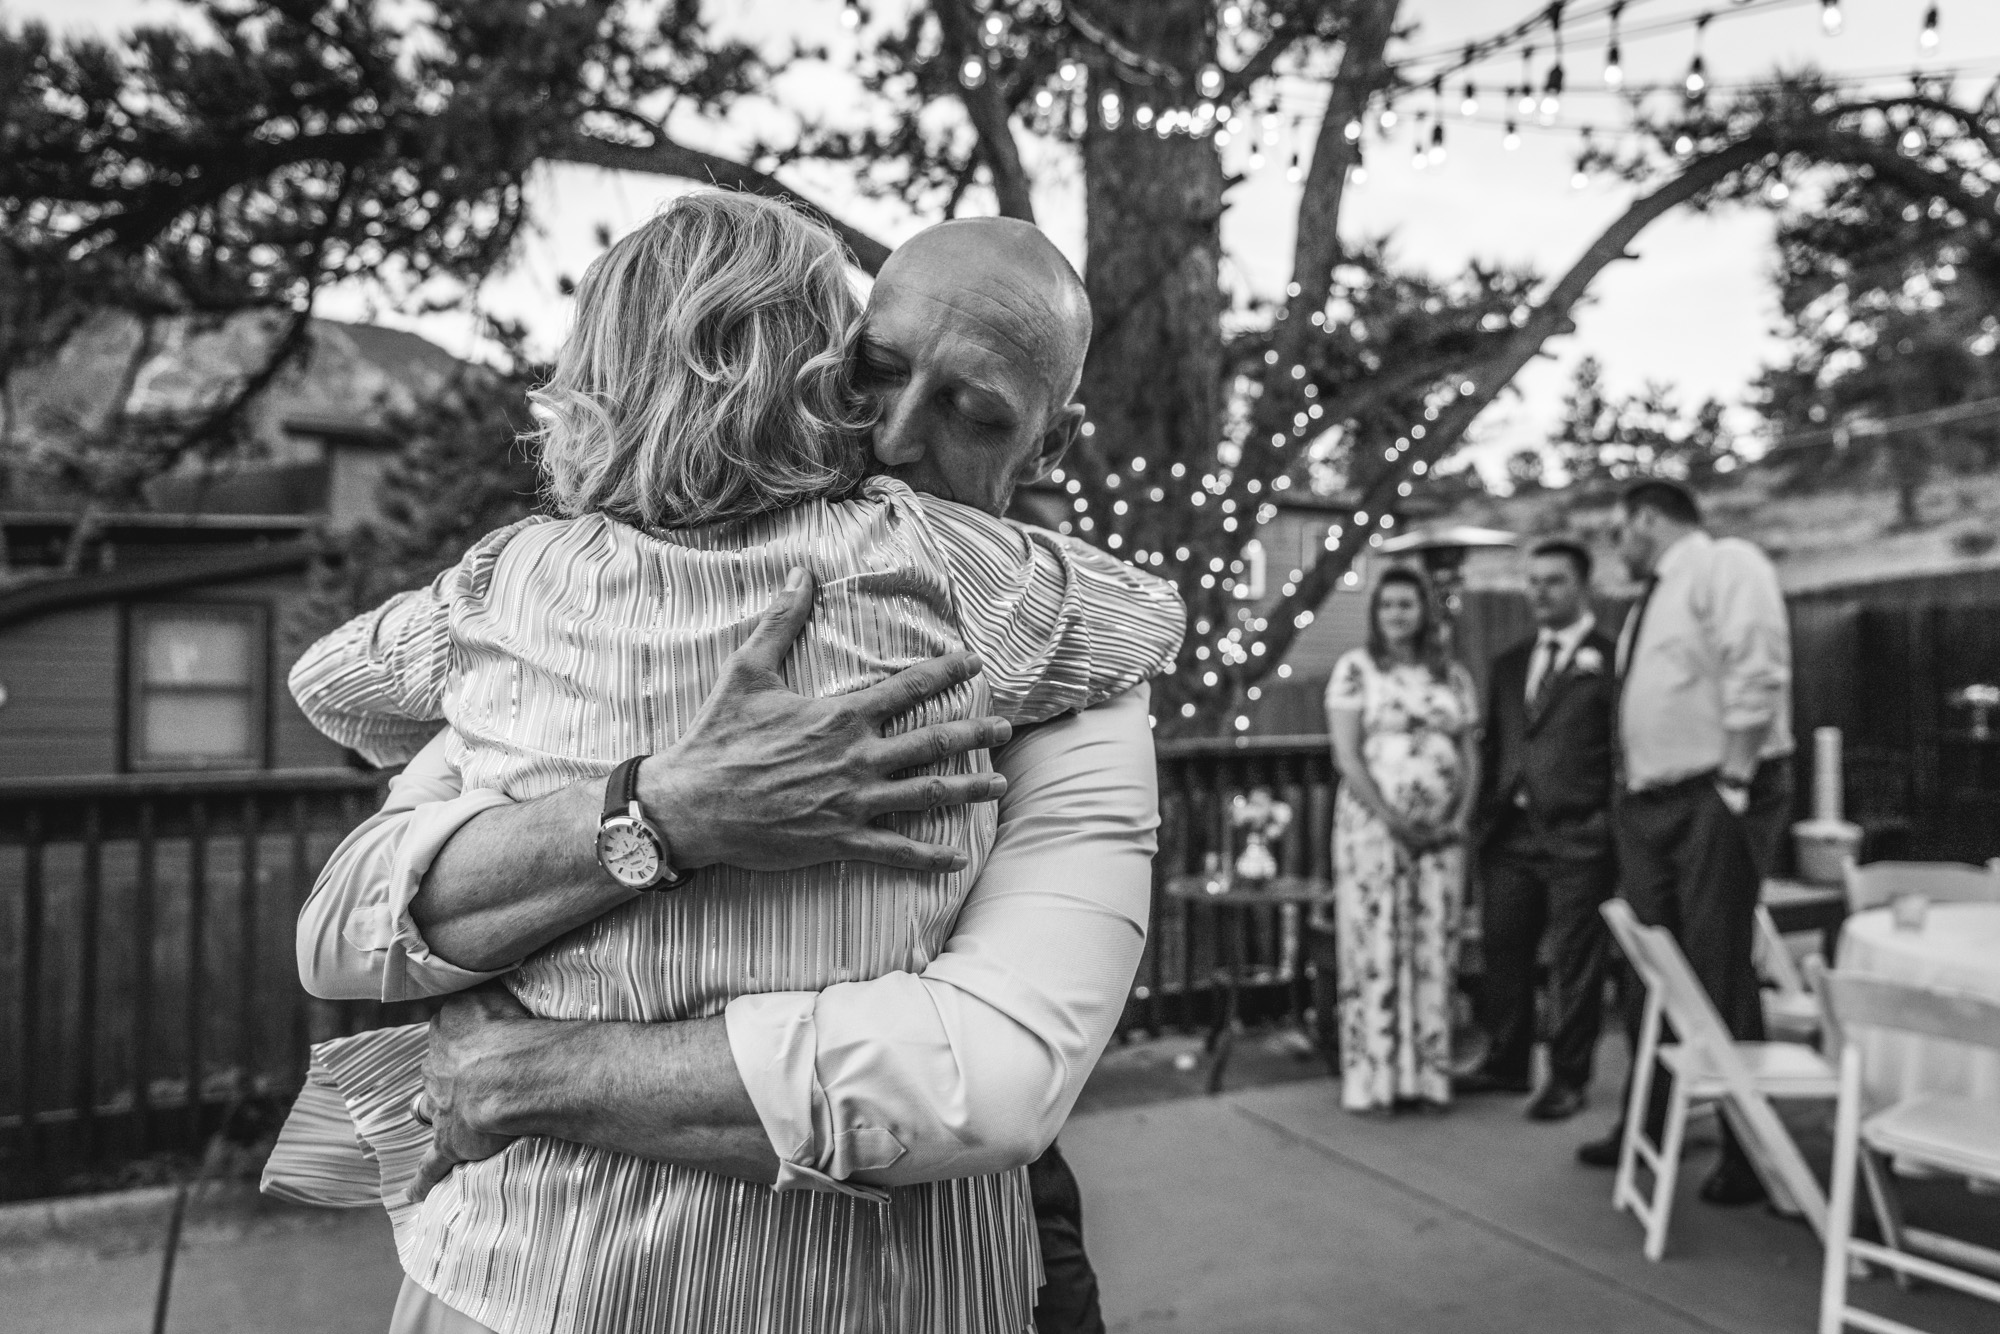 Black and white photograph taken at a wedding reception in which the son hugs his mother during their first dance.